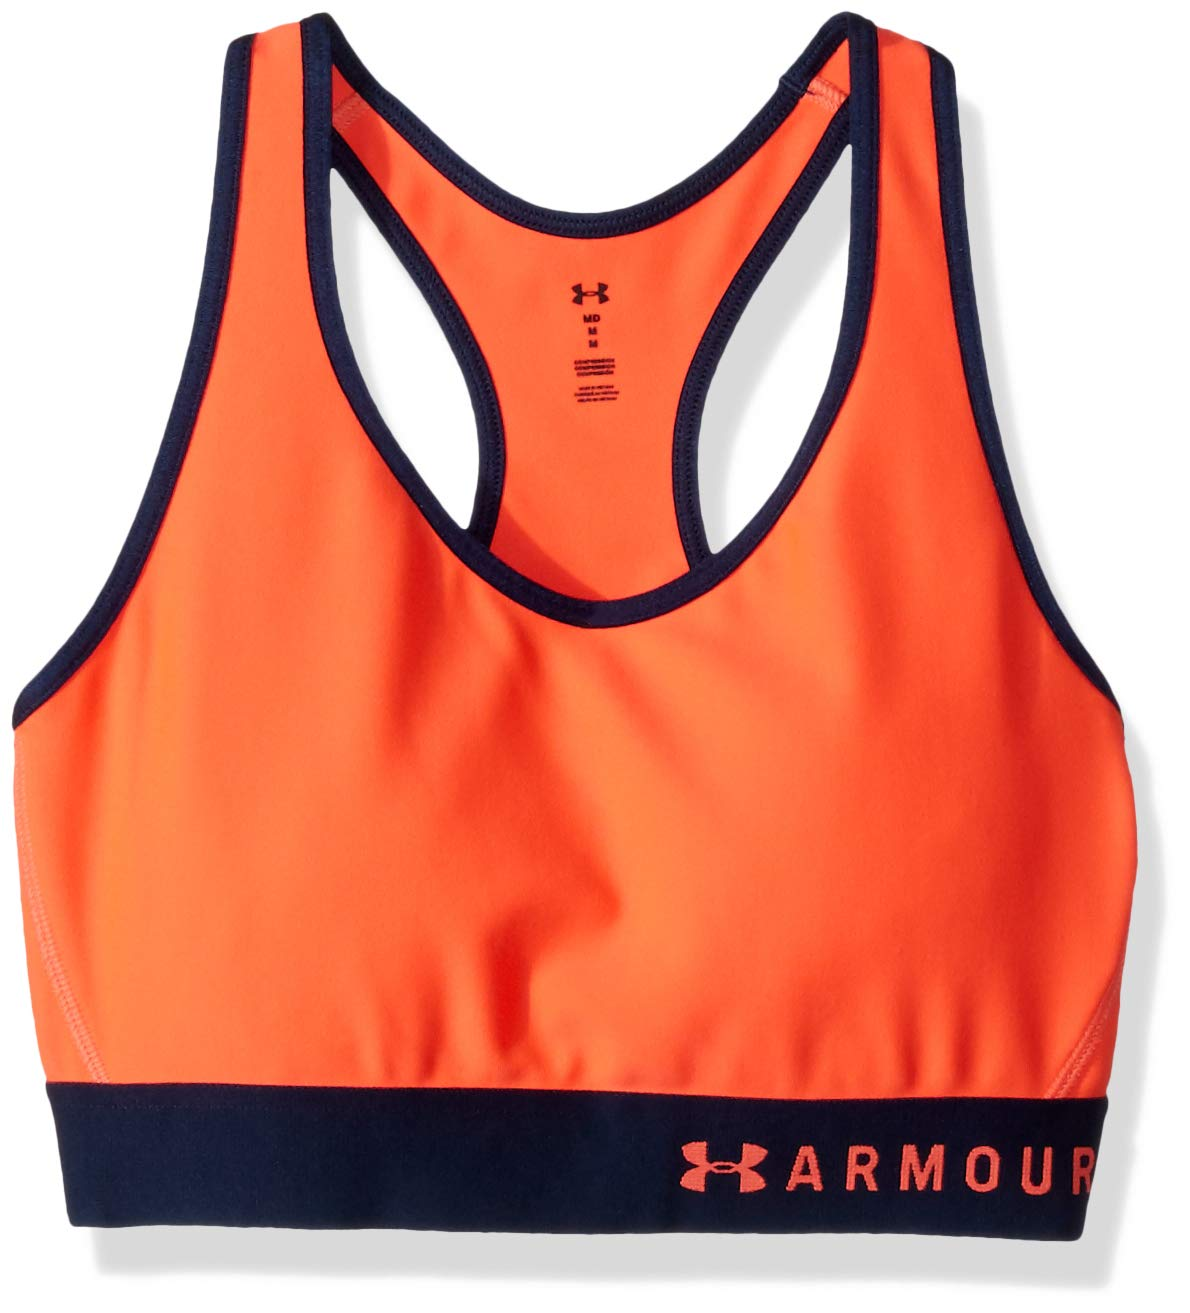 Under Armour womens Armour Mid Keyhole Sports Bra, After Burn (878)/After Burn, Small by Under Armour